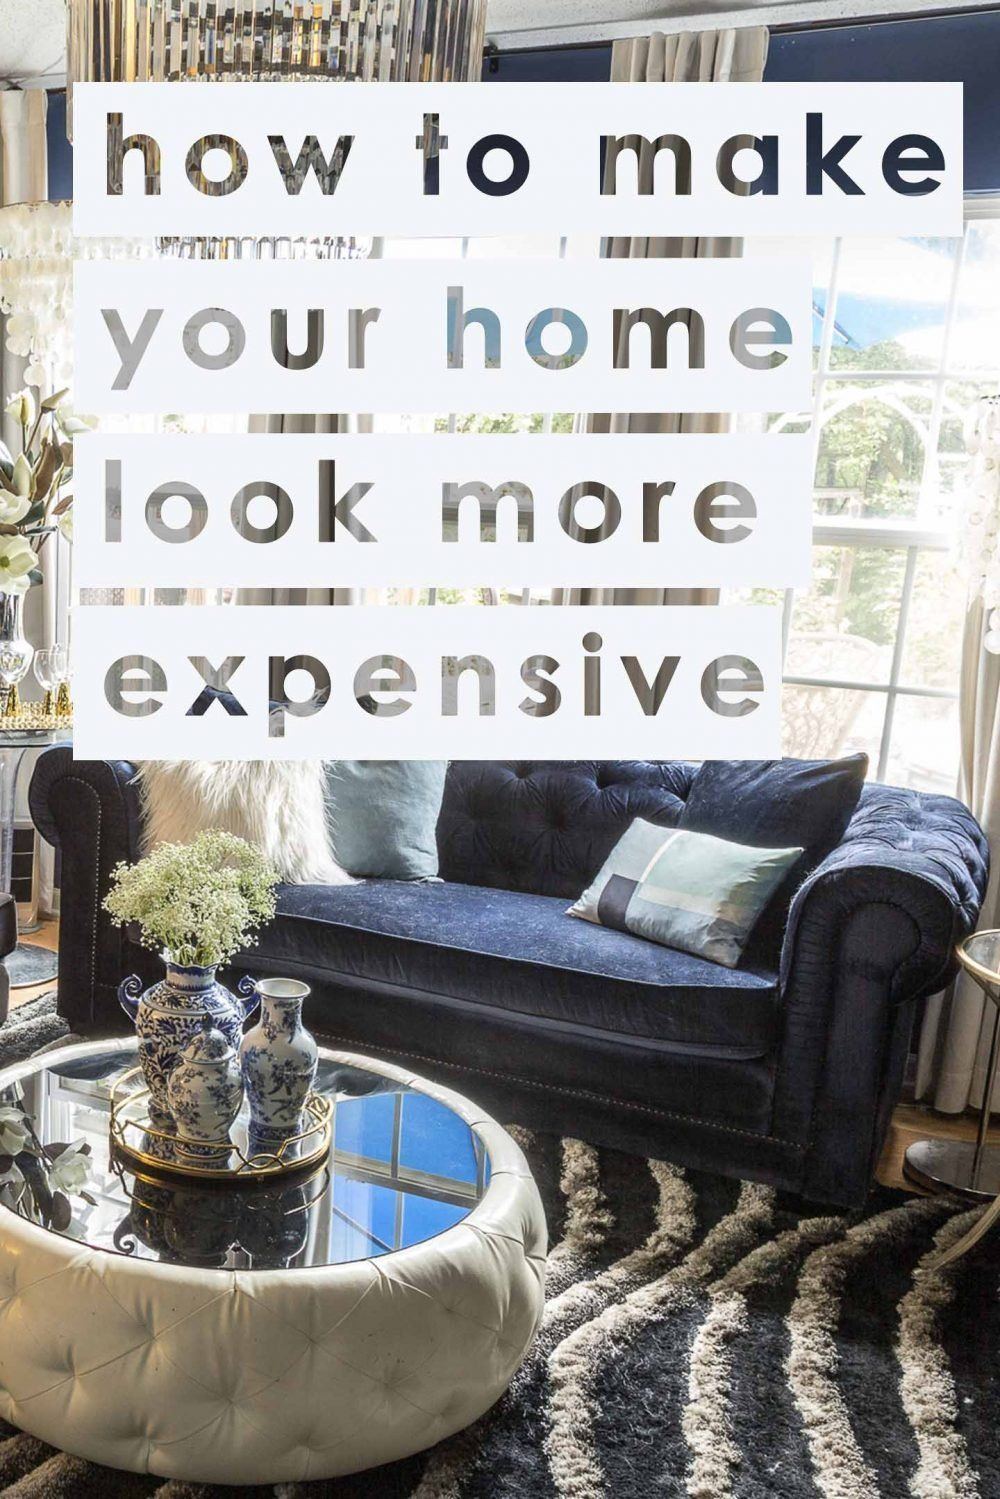 10 Easy Ways To Make Your House Look More Expensive Interior